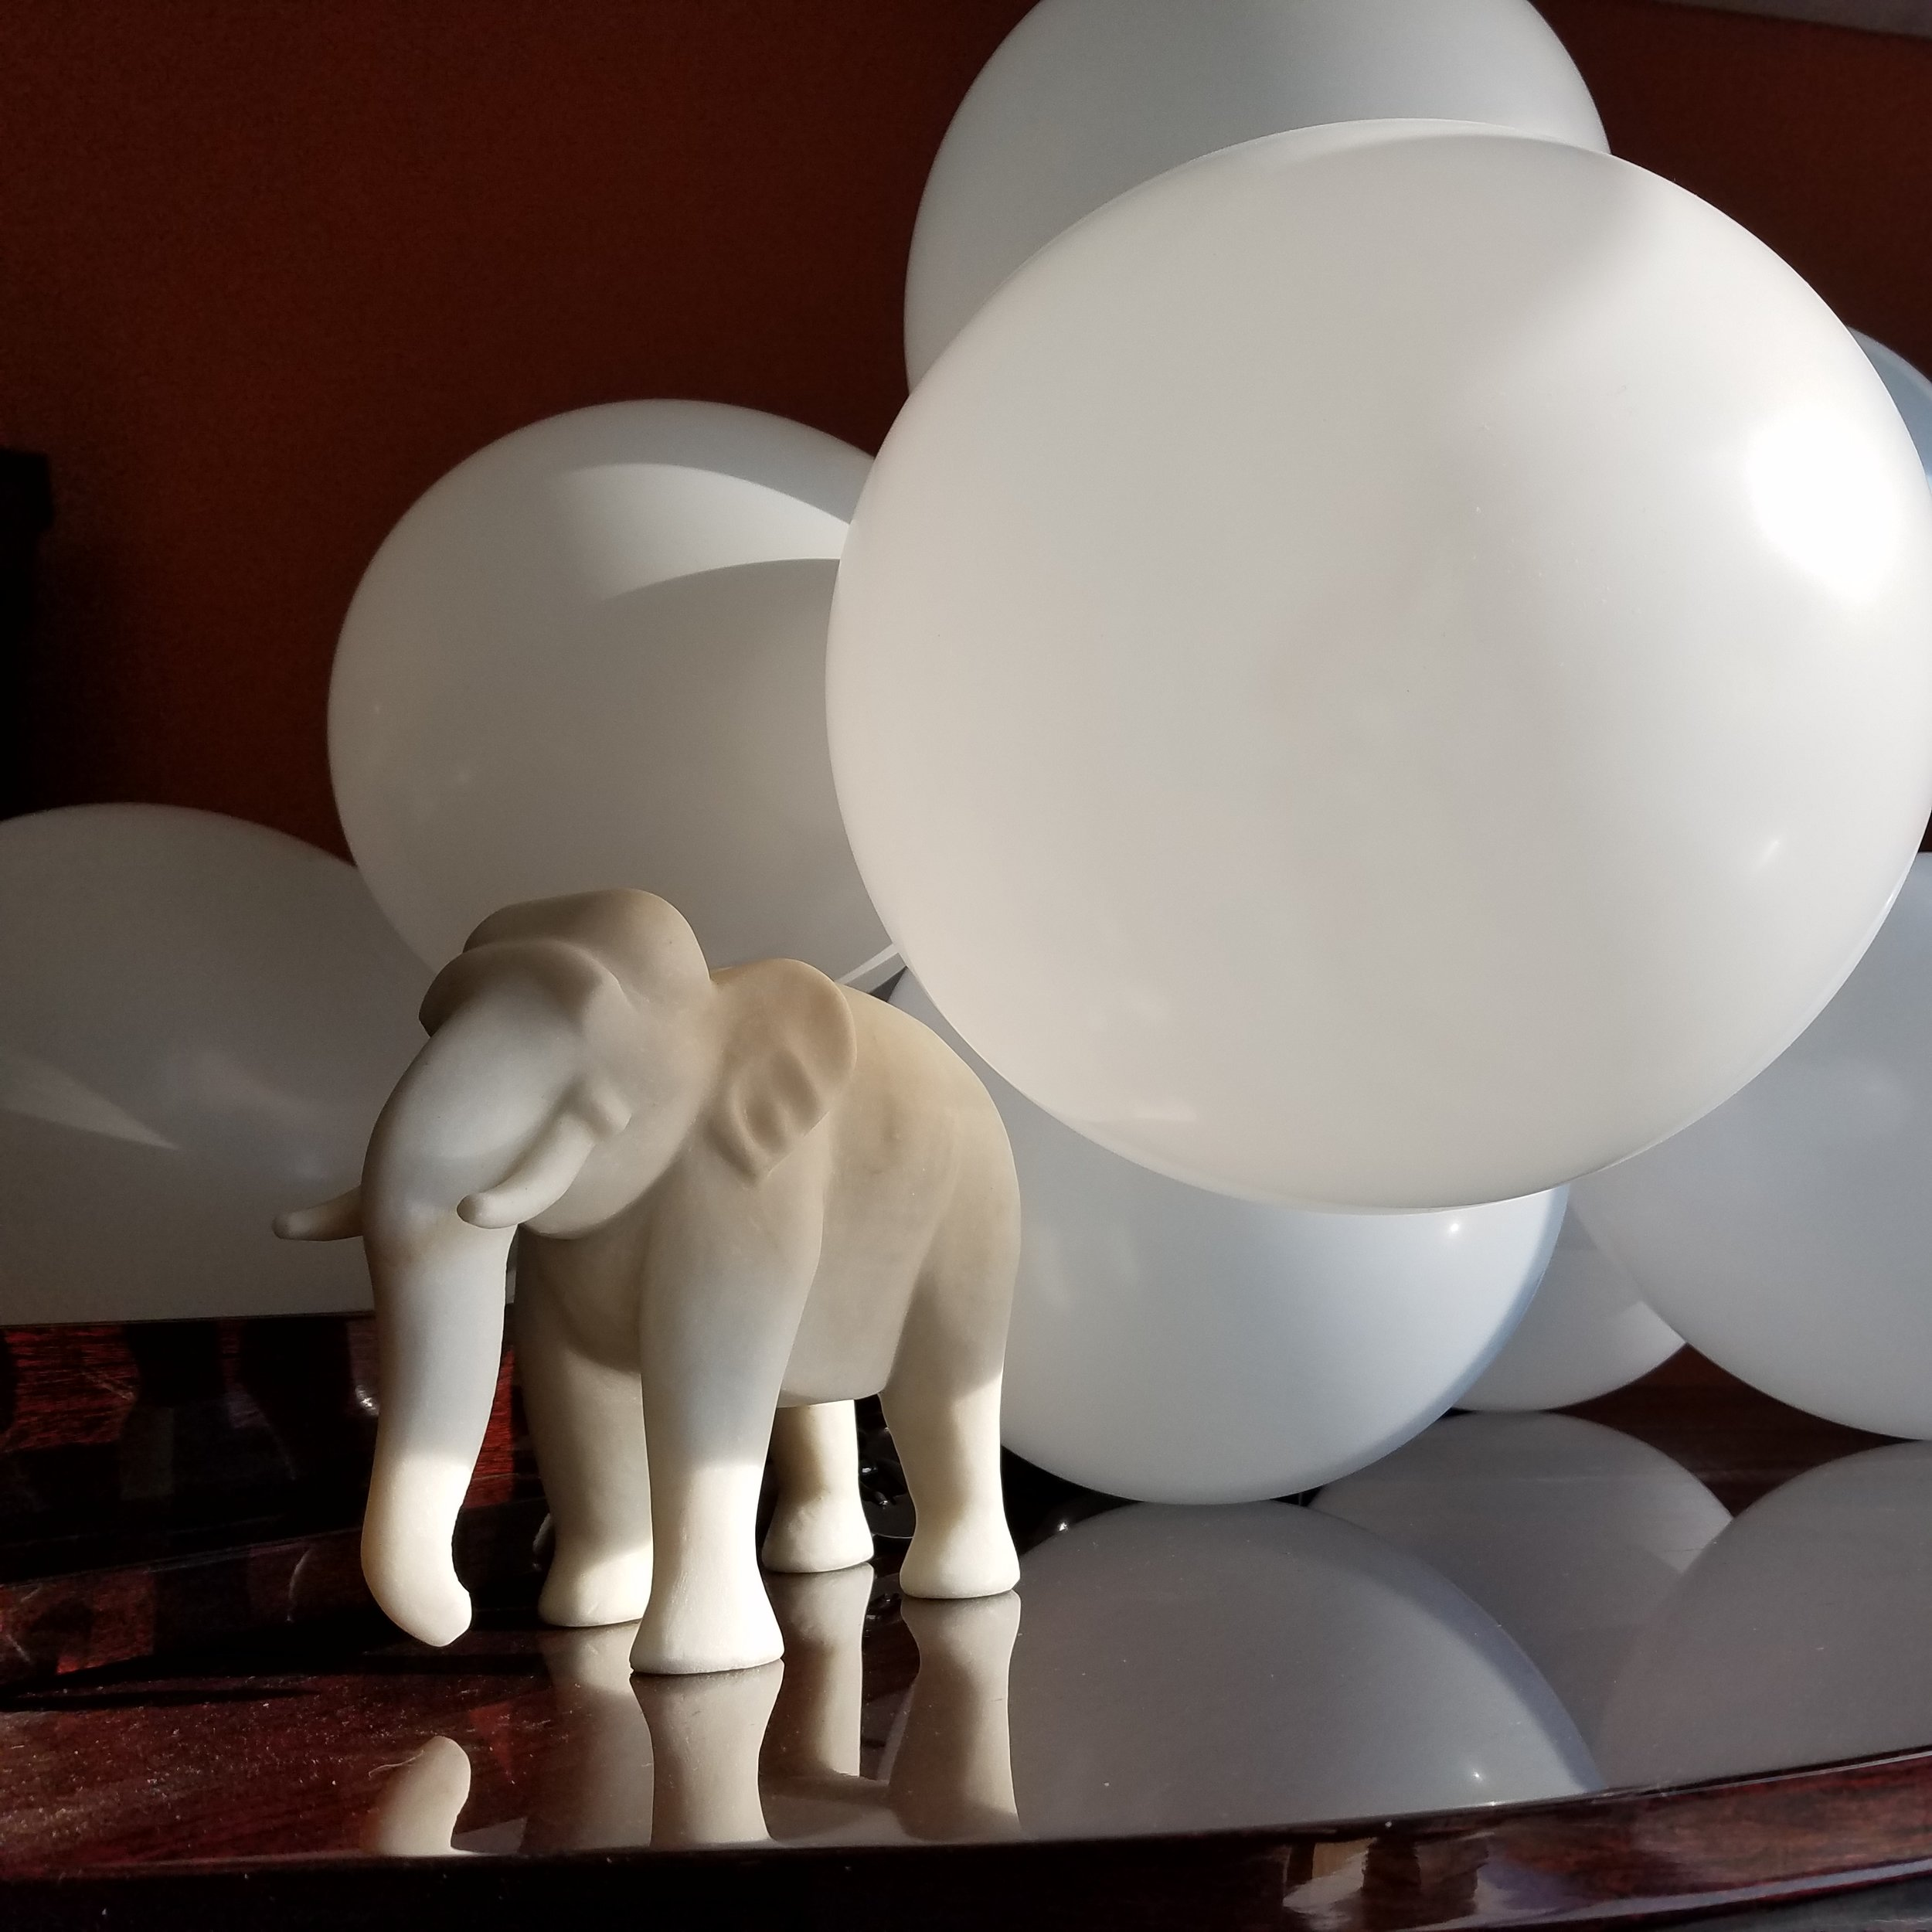 How can a cloud weigh as much as an elephant? Or hundreds of elephants?